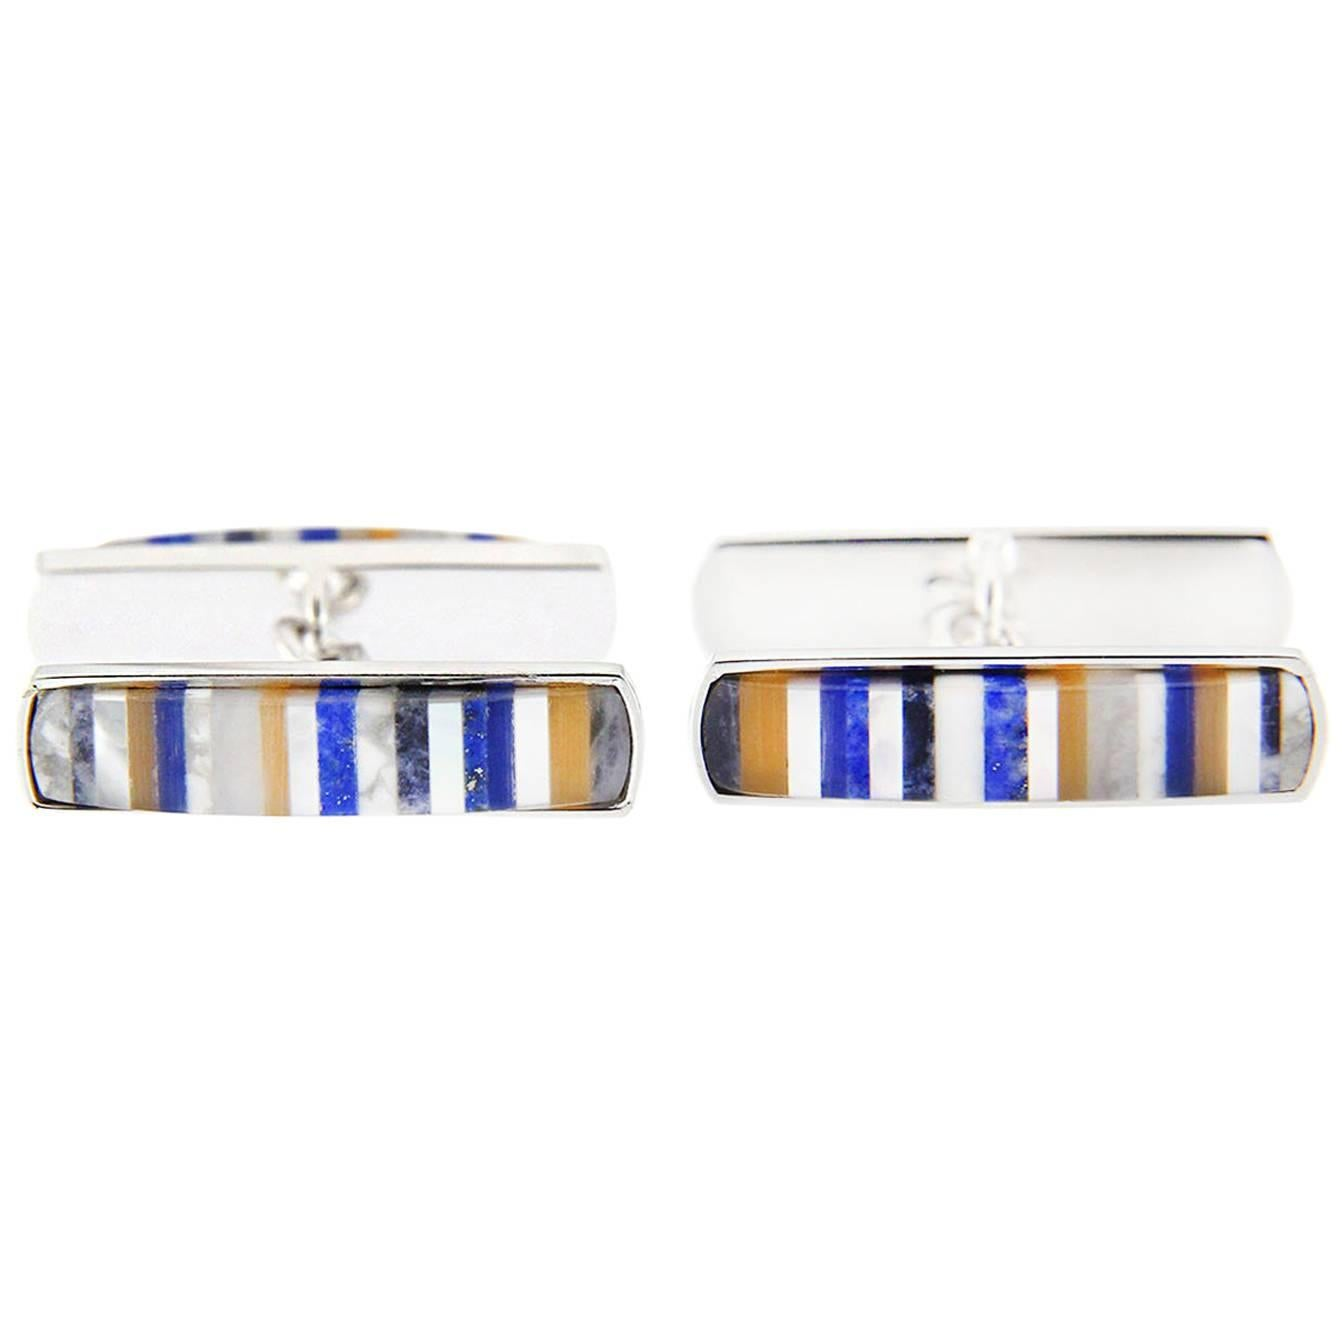 Jona Semi Precious Stone and Mother-of-Pearl Sterling Silver Cufflinks